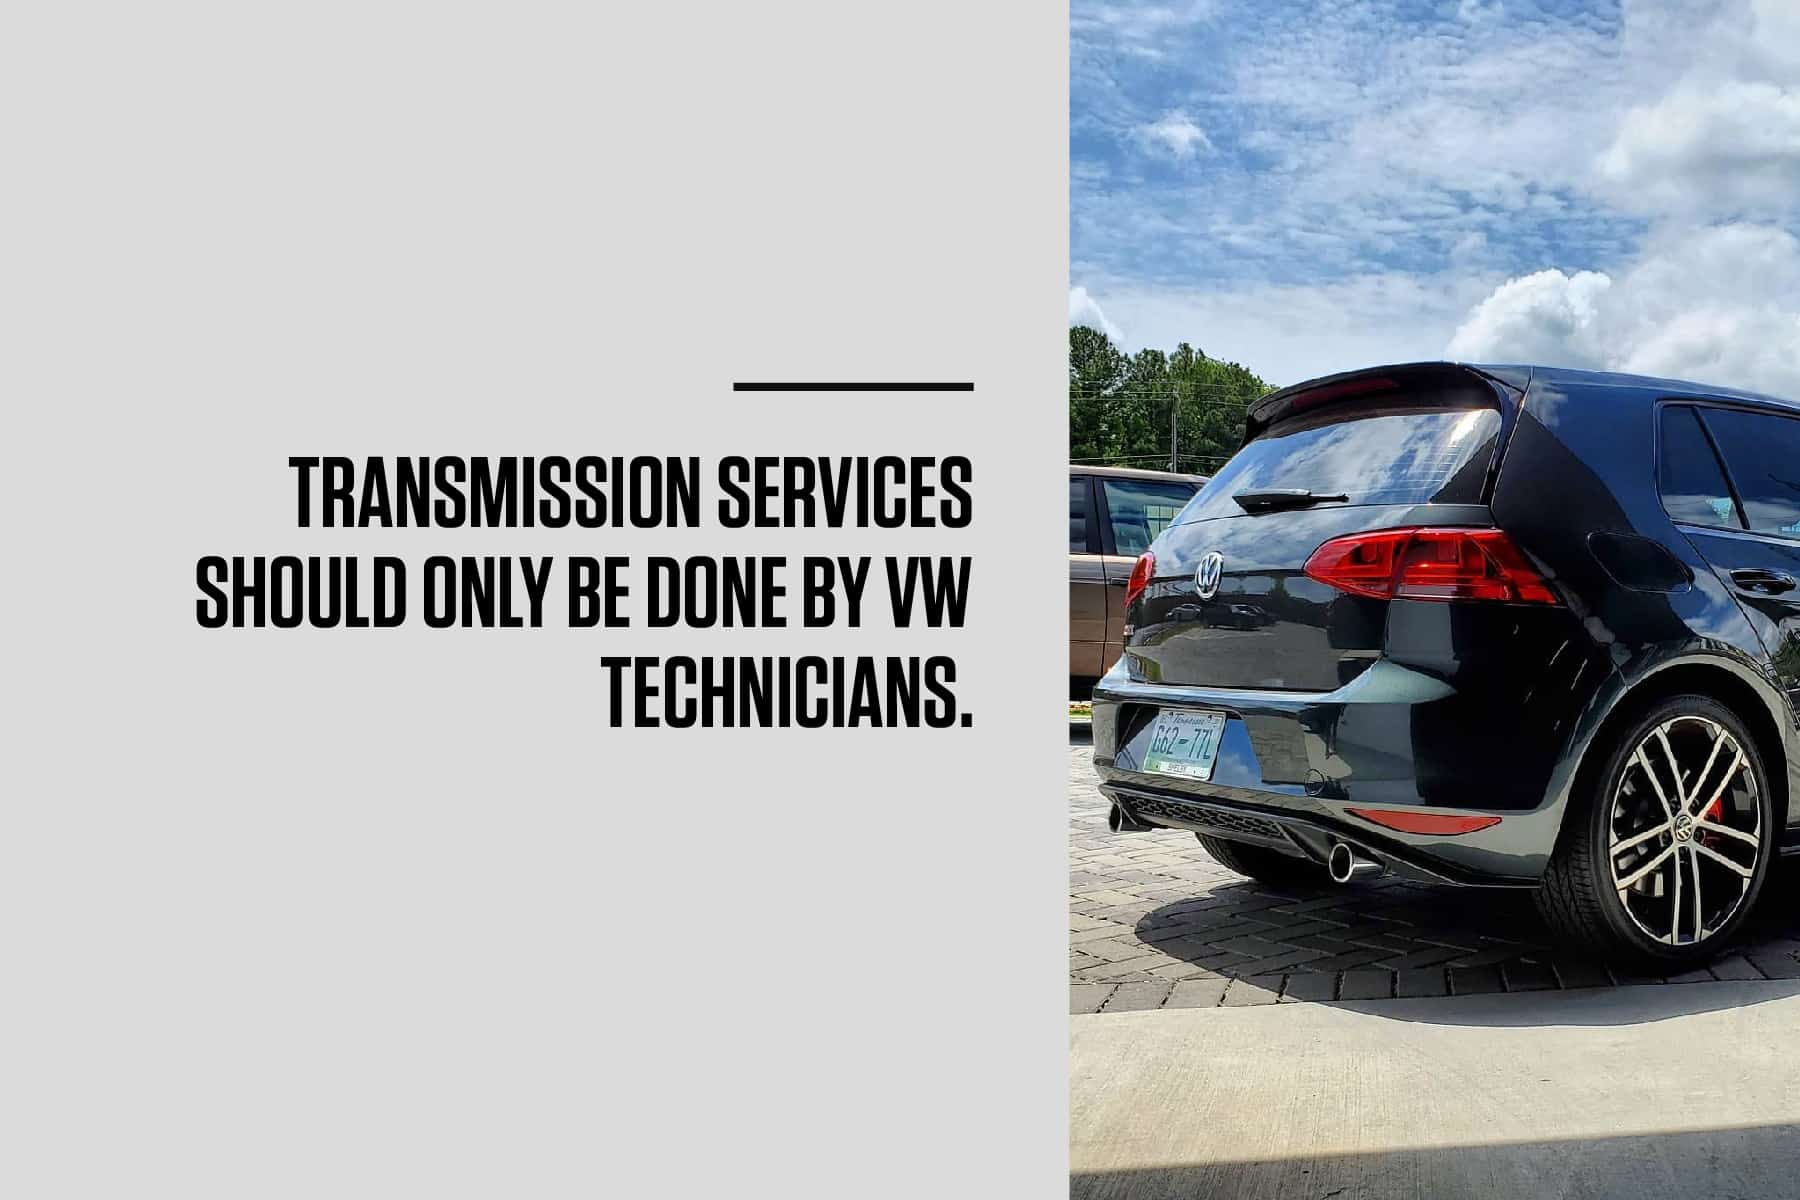 vw transmission service should be done by qualified technicians